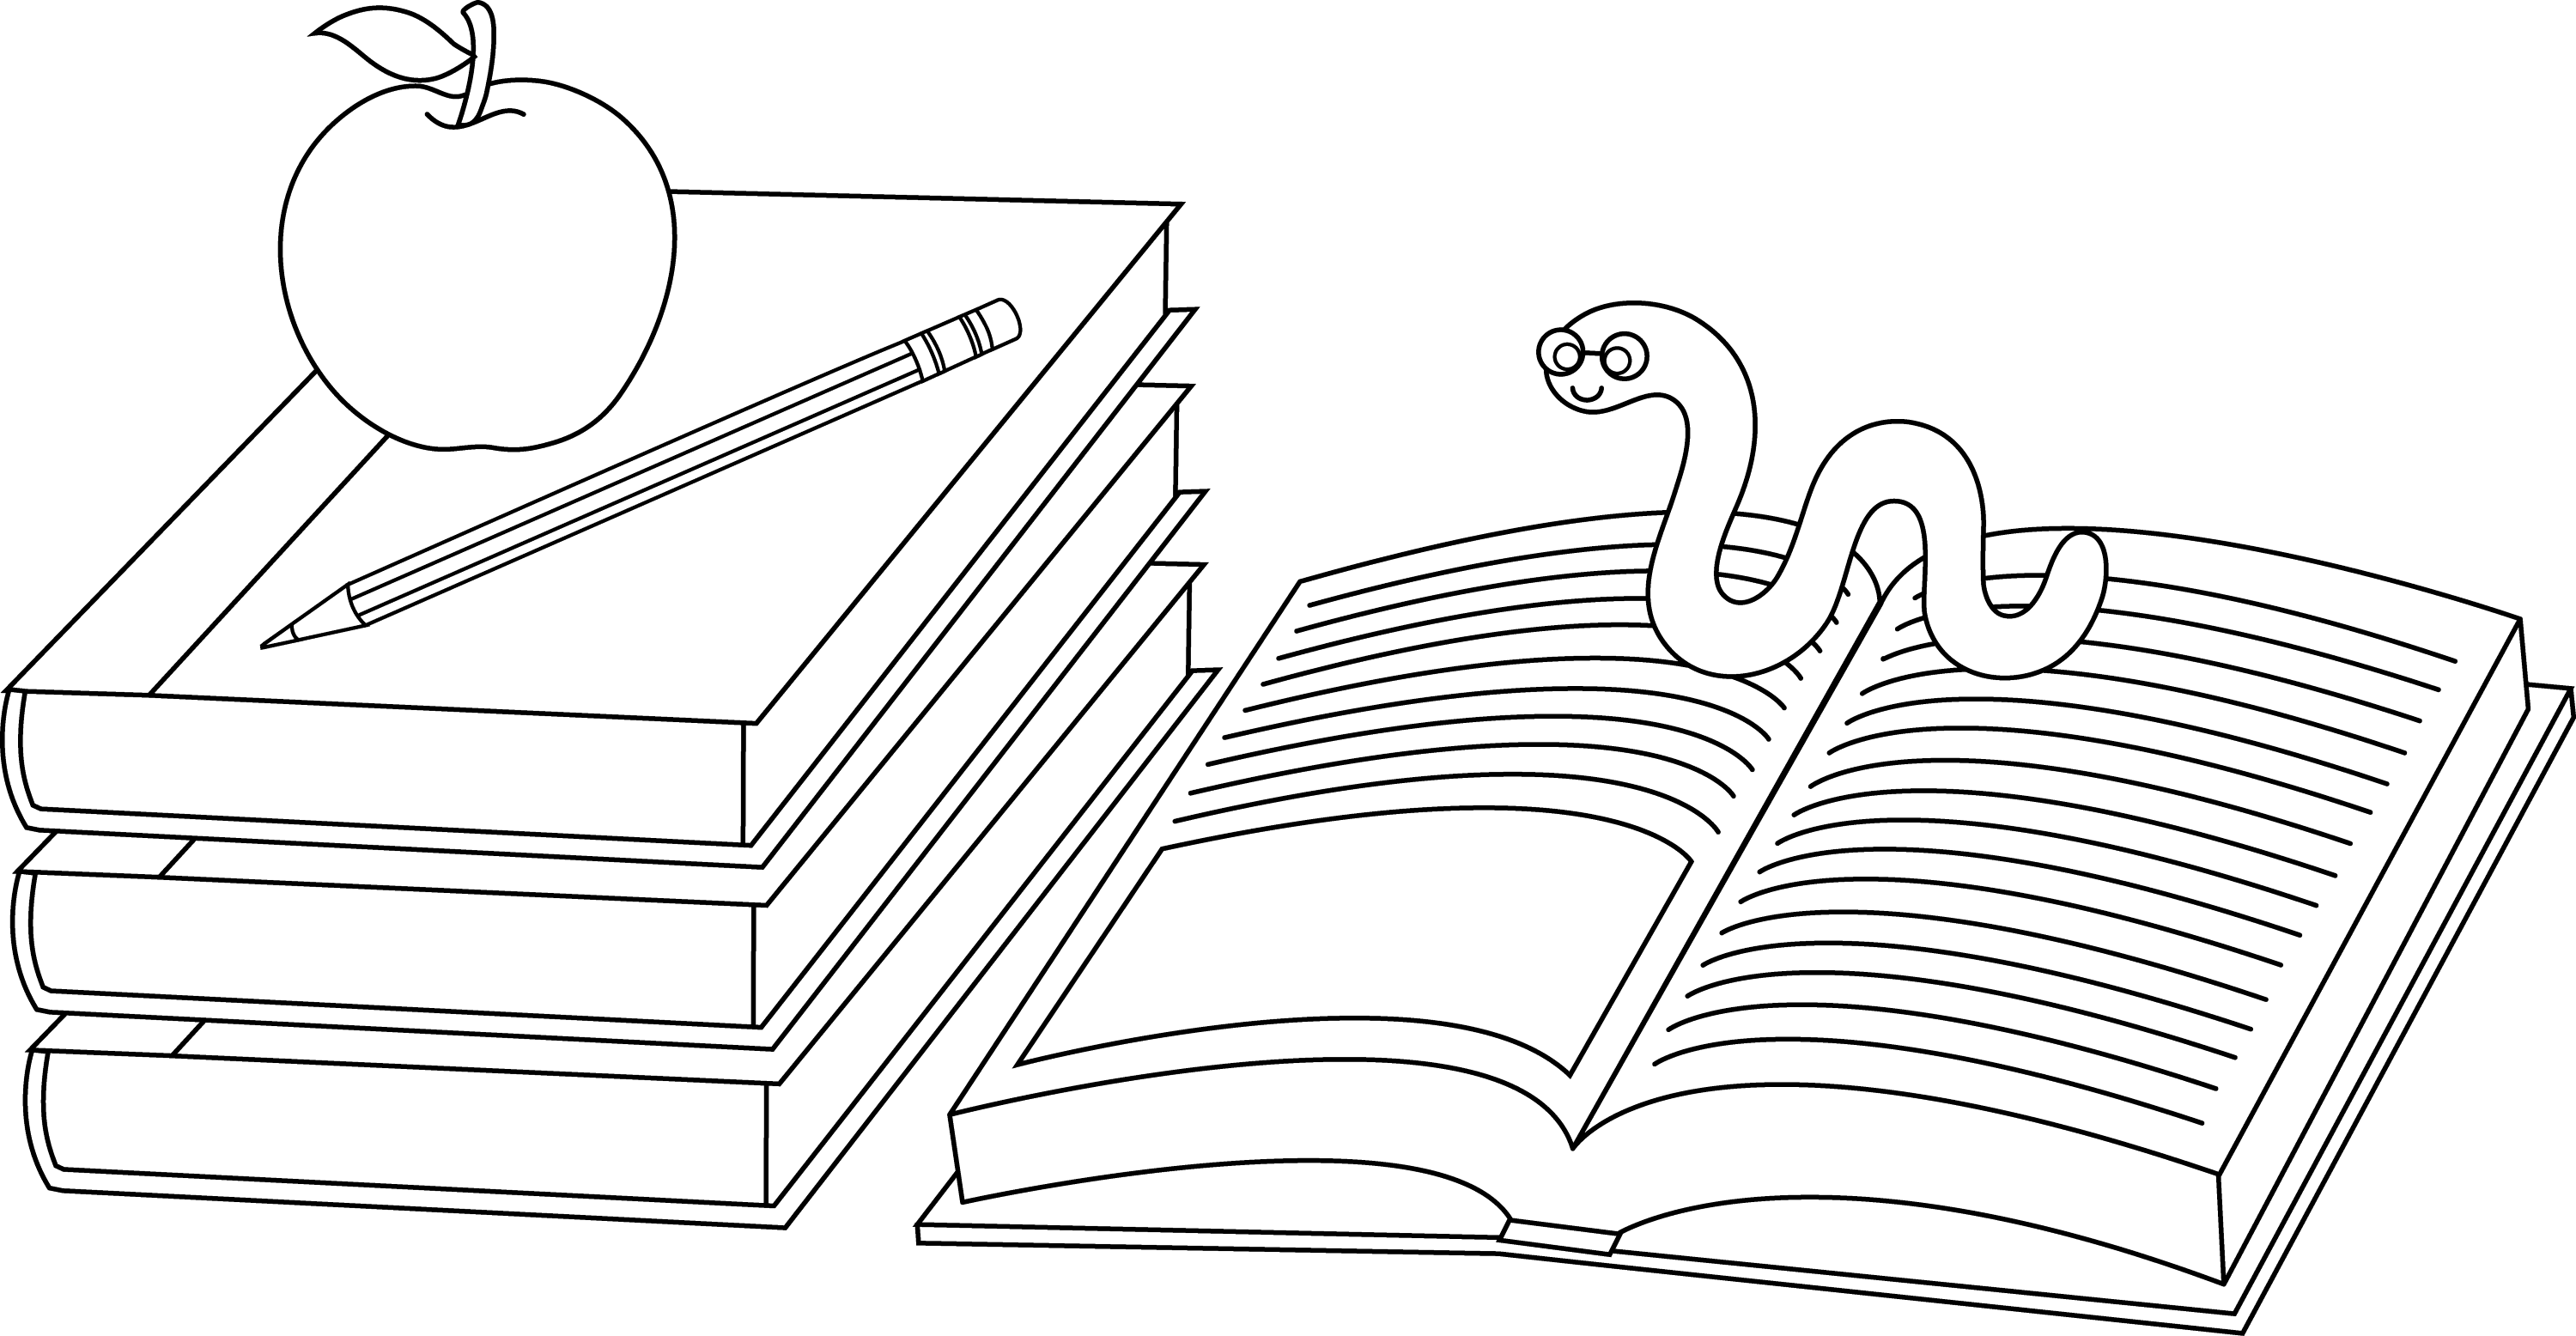 Colorable School Books And Bookworm Free Clip Art Book Colouring Pages